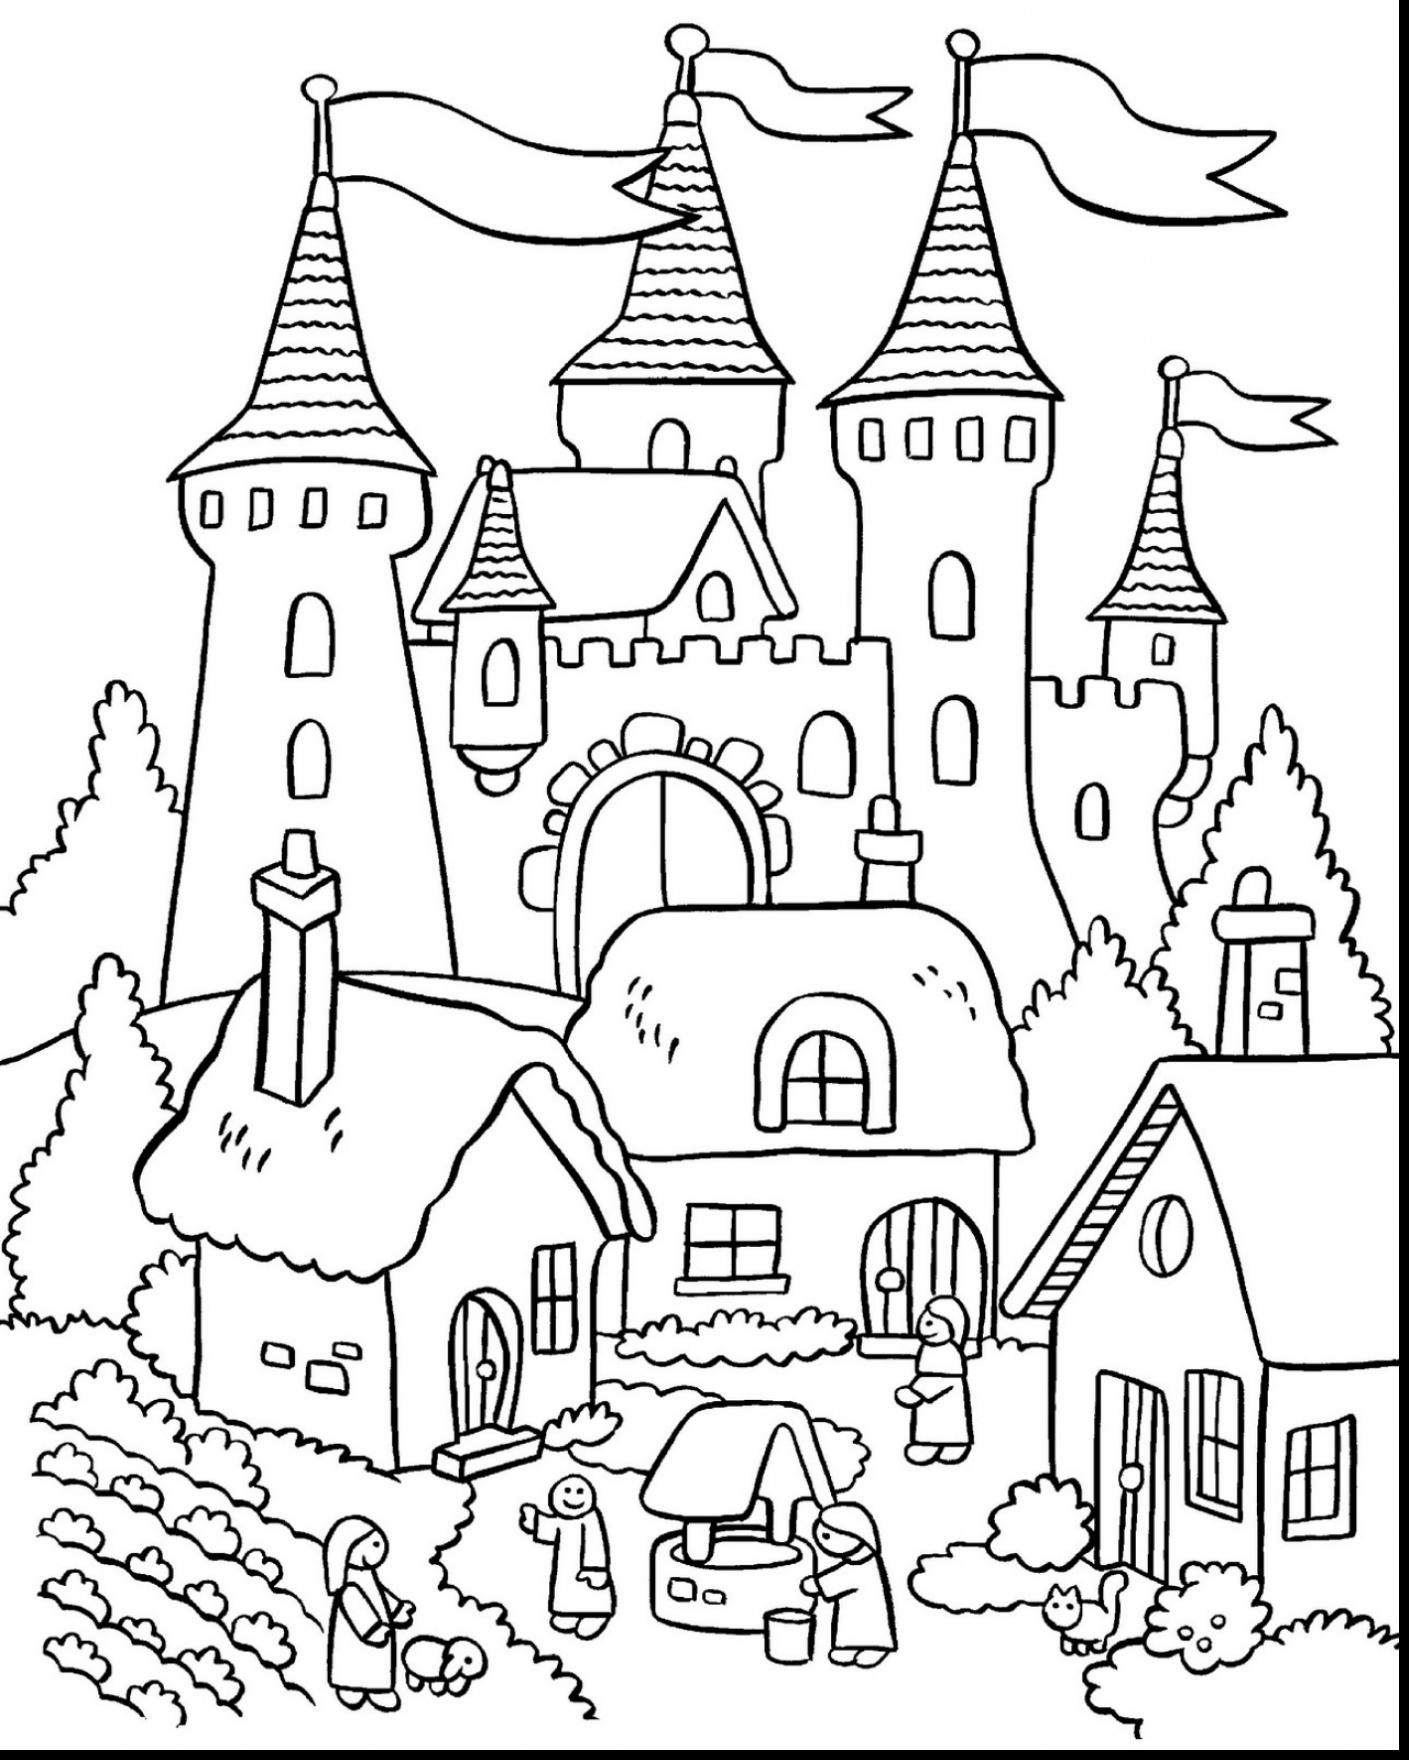 easy castle drawing how to draw castle pencil drawing for kids step by step drawing easy castle